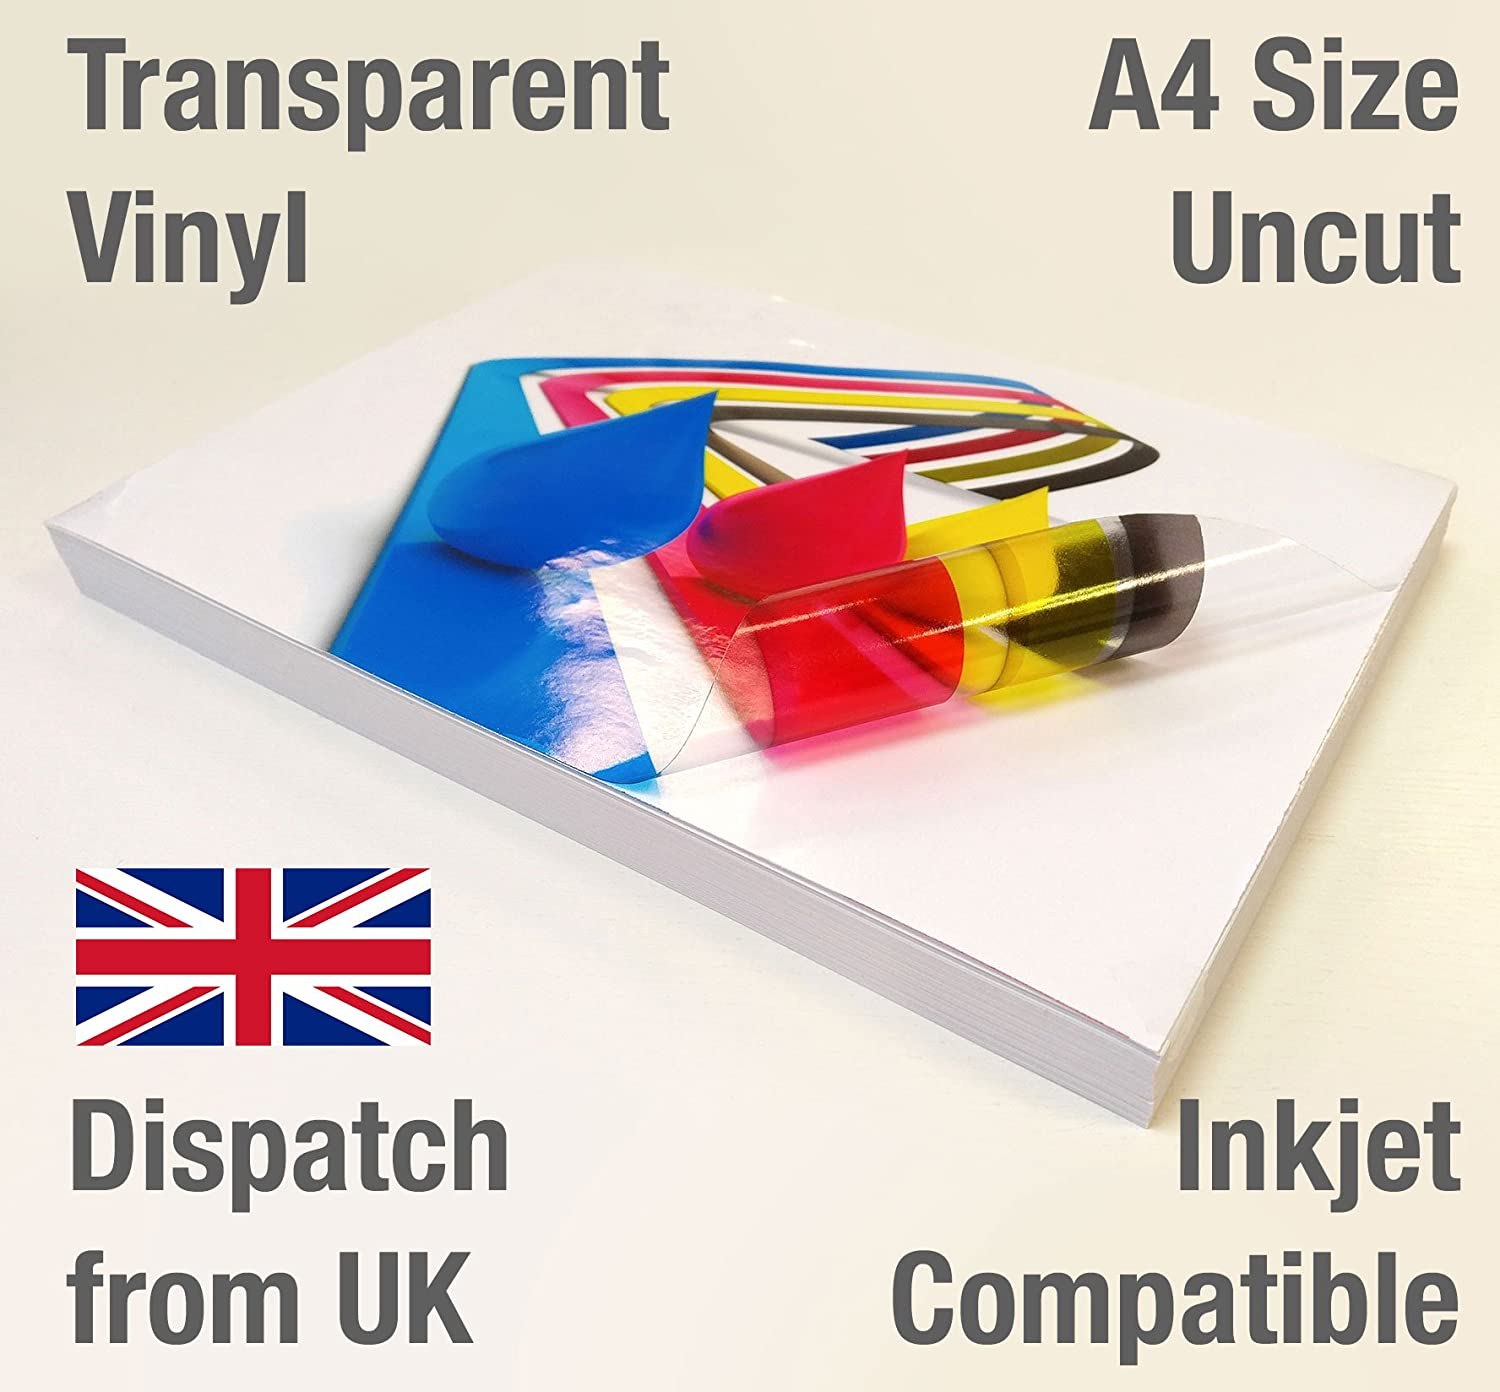 15 Sheets A4 Clear/Transparent Vinyl Glossy Self Adhesive Sticker Quality Inkjet Printable EVG